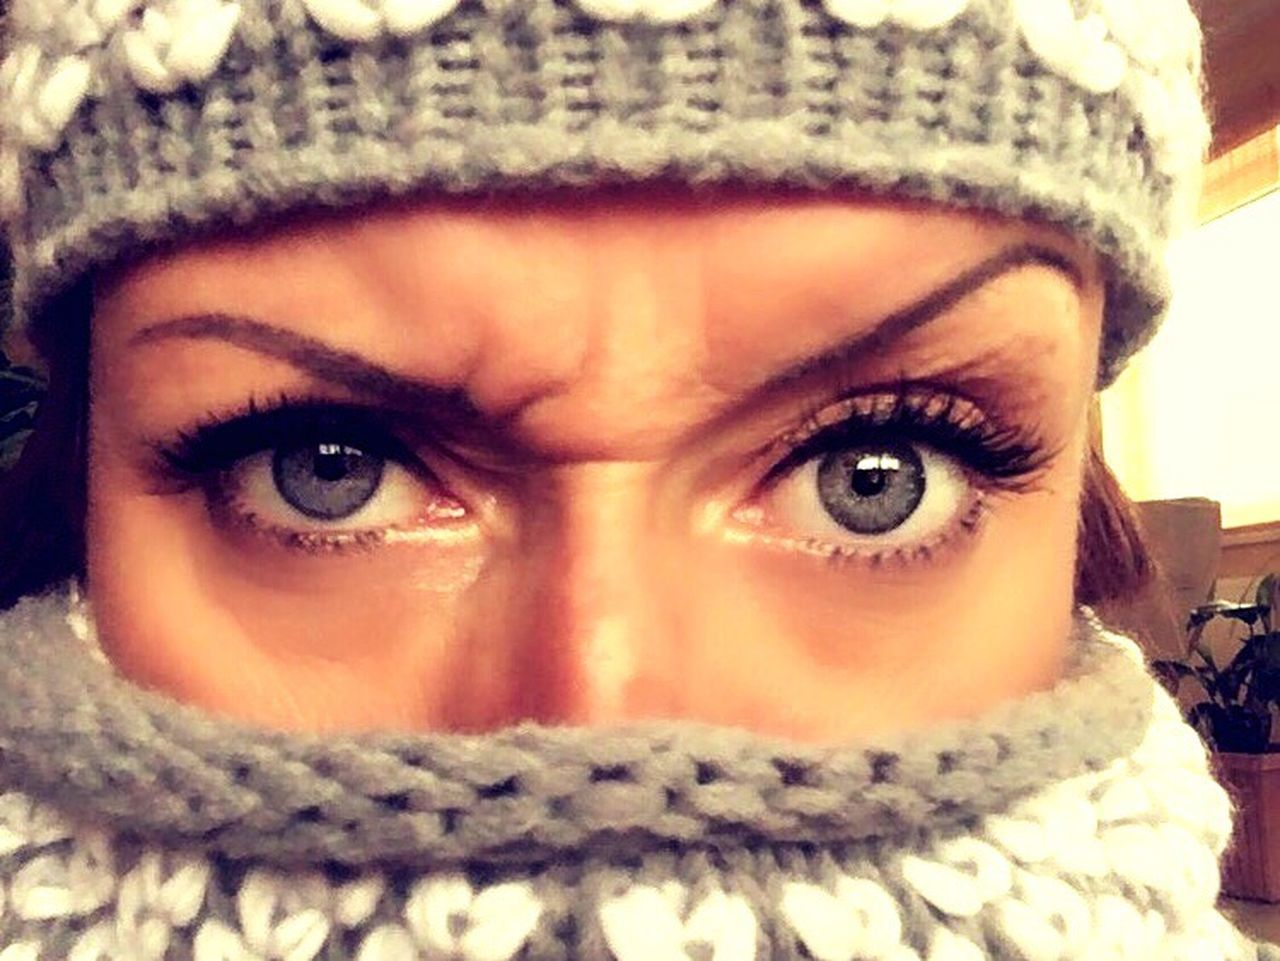 natural born G A N G S T A Looking At Camera Portrait Young Adult Winter Human Face Warm Clothing Young Women Human Eye Eye Greeneyes Beautiful Woman Cold Temperature Cold Days Bestoftheday Eye4photography  Real People Gangsta Gangsters Paradise Human Body Part Lifestyles One Person Girl Front View Headshot